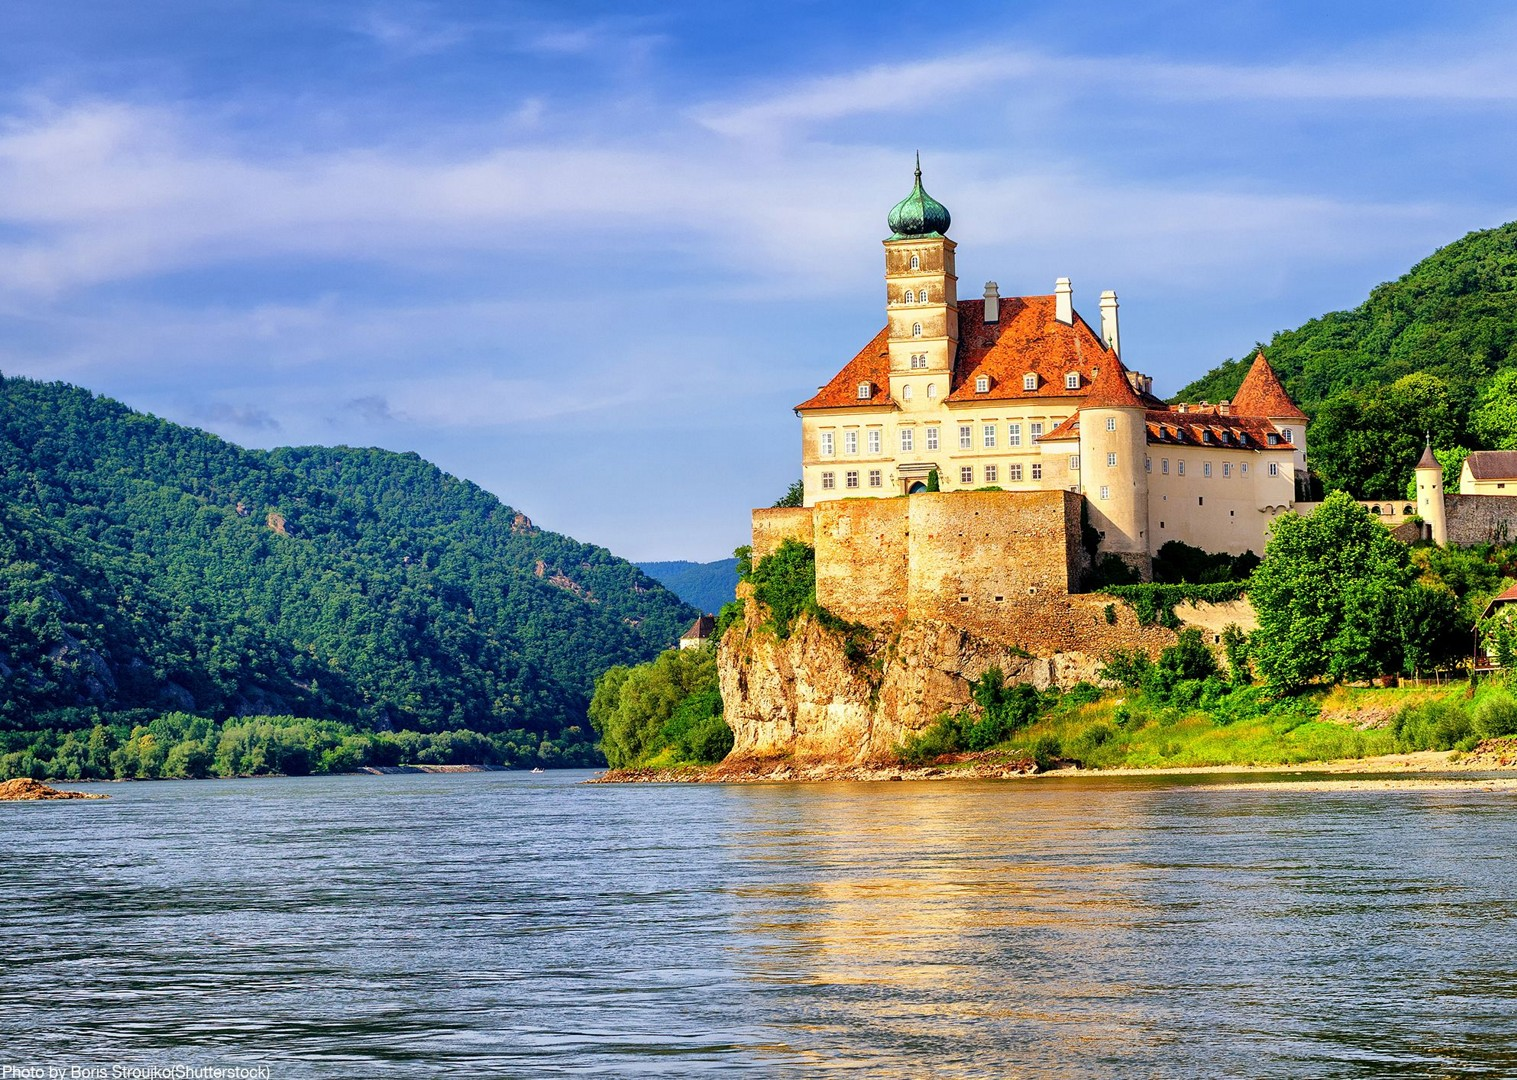 schonbuehel-castle-danube-cycle-path-austria-tour-saddle-skedaddle.jpg - Germany and Austria - The Danube Cycle Path - Supported Leisure Cycling Holiday - Leisure Cycling